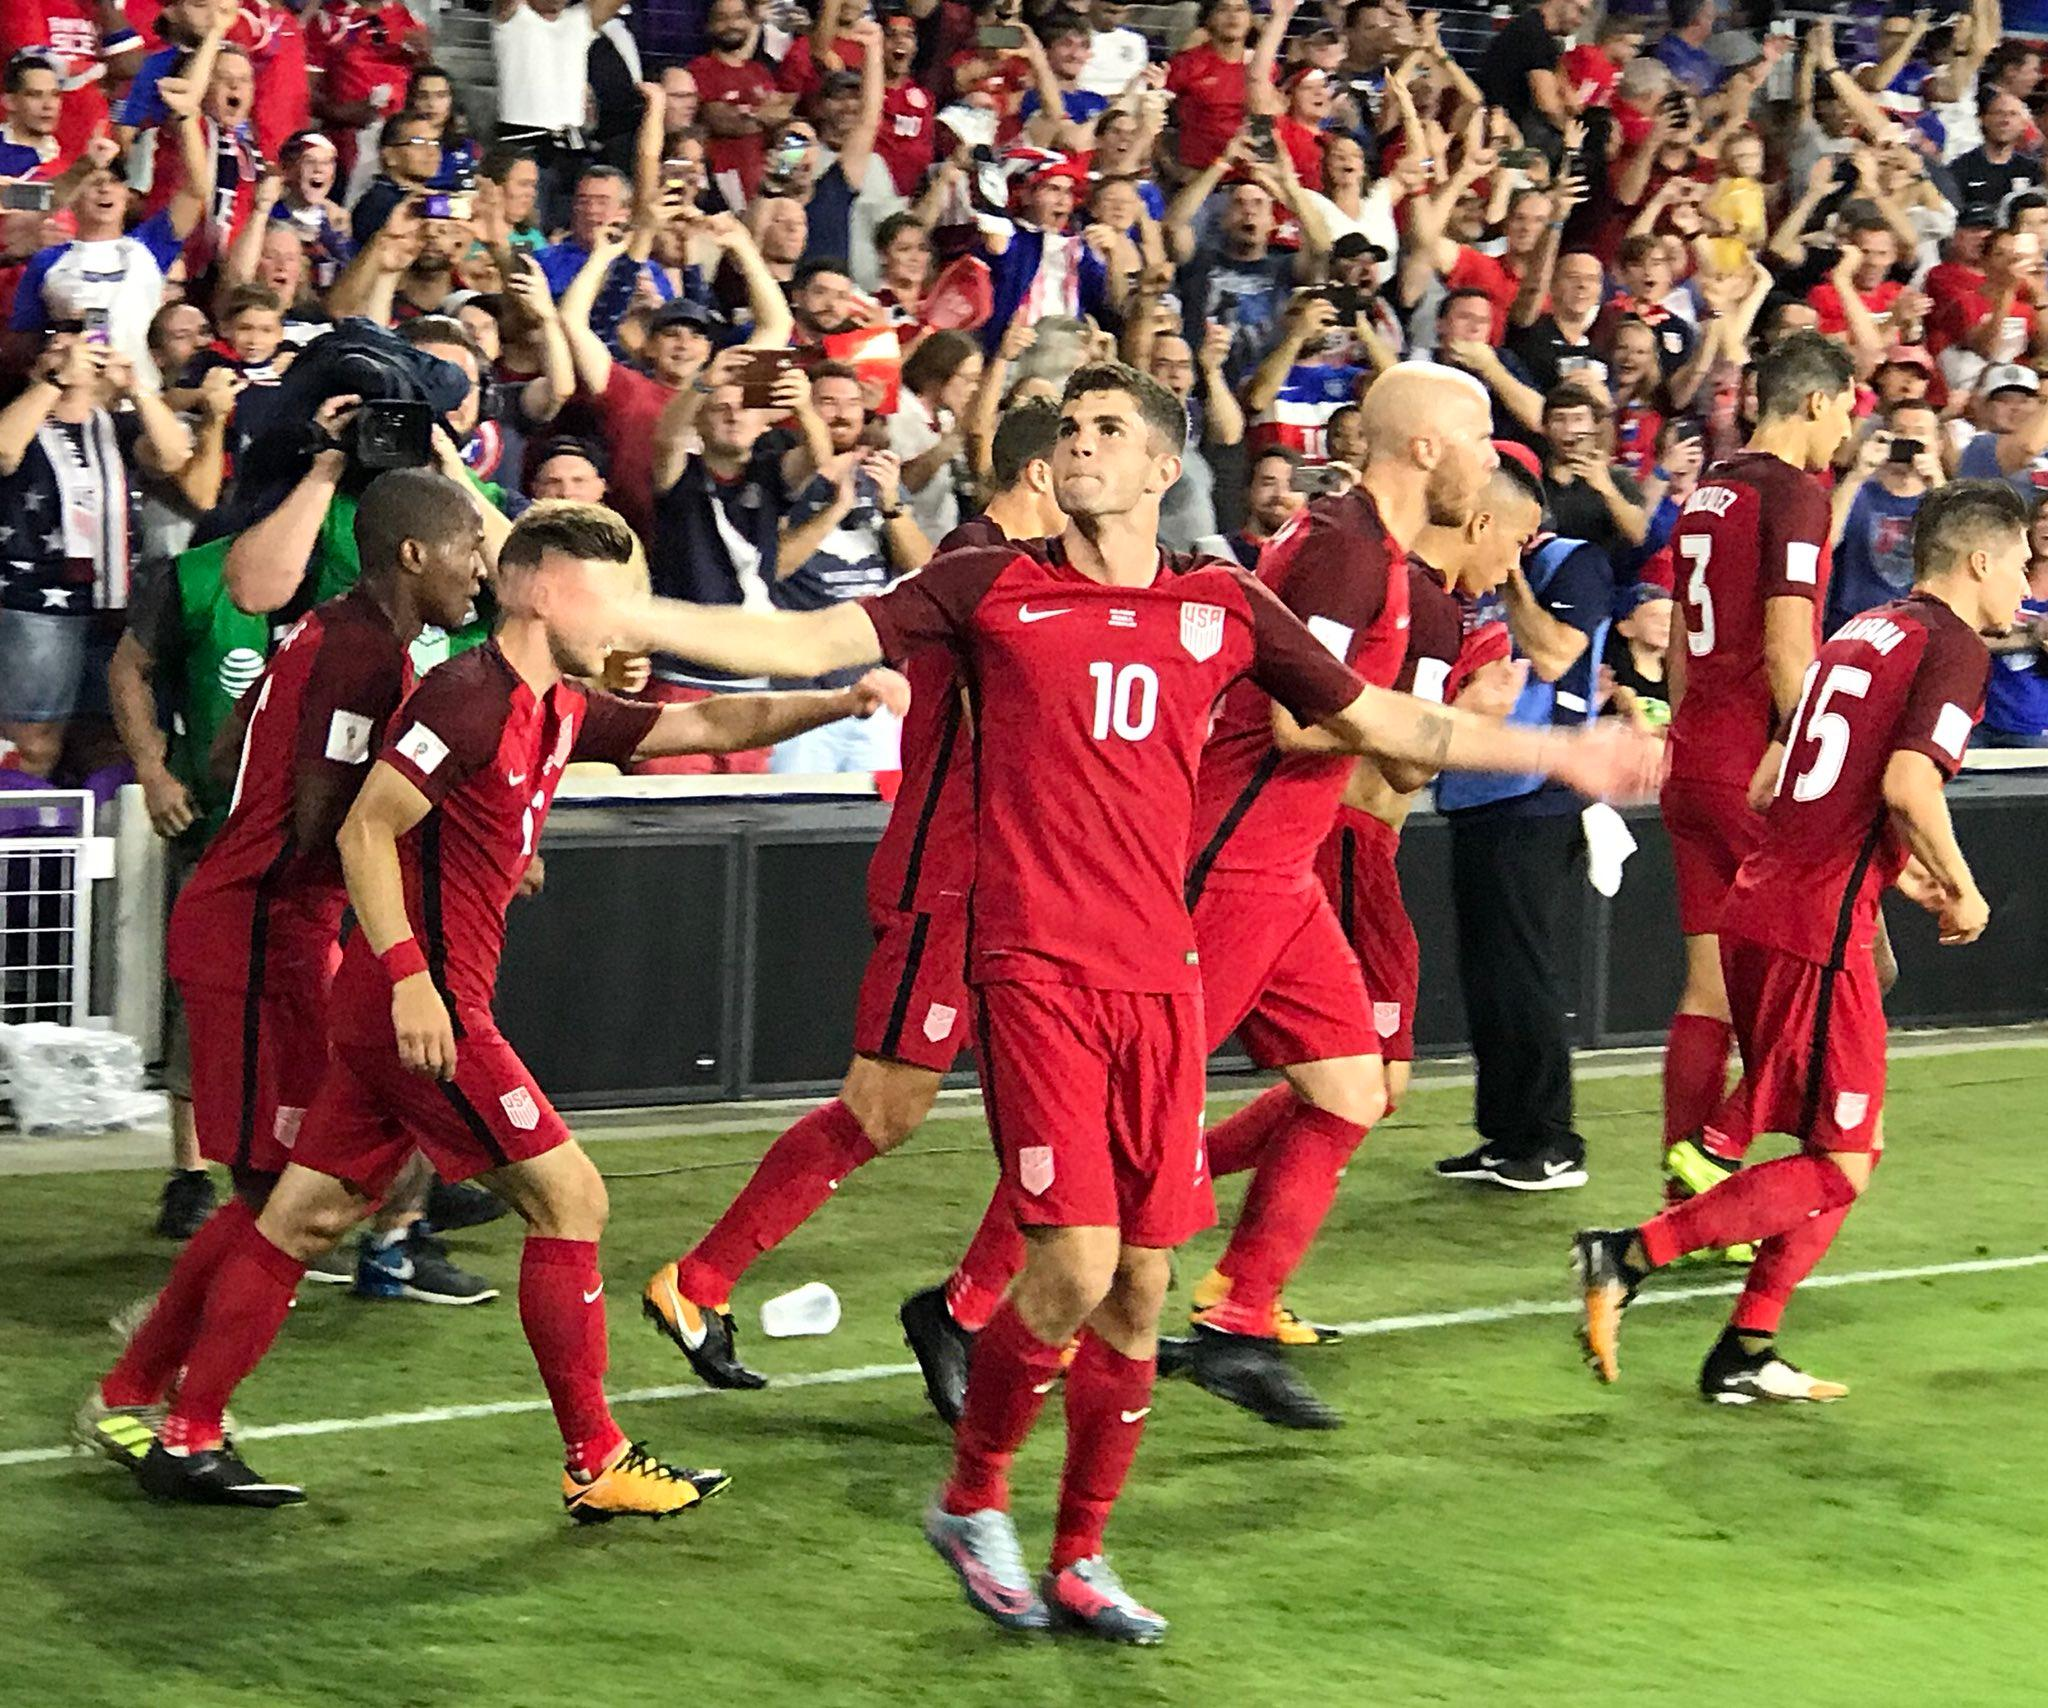 1 goal, 1 assist and 1 brilliant half from Christian Pulisic and the USMNT. (via @ESPNFC) https://t.co/n7EWQnow1r